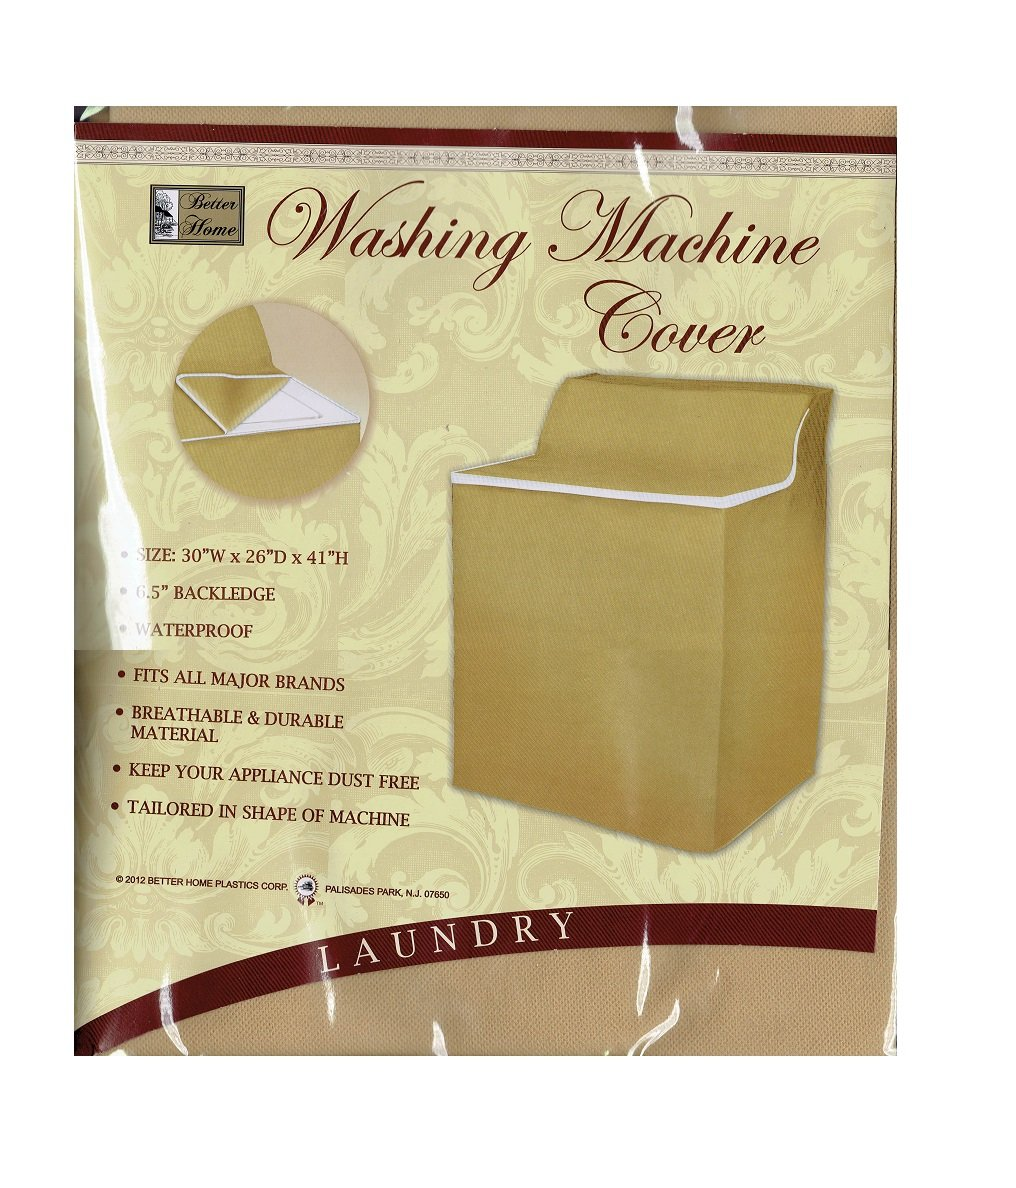 Better Home Xlarge Fabric Waterproof Washing Machine Cover with Zippered Top Material Appliance (Beige Tan)